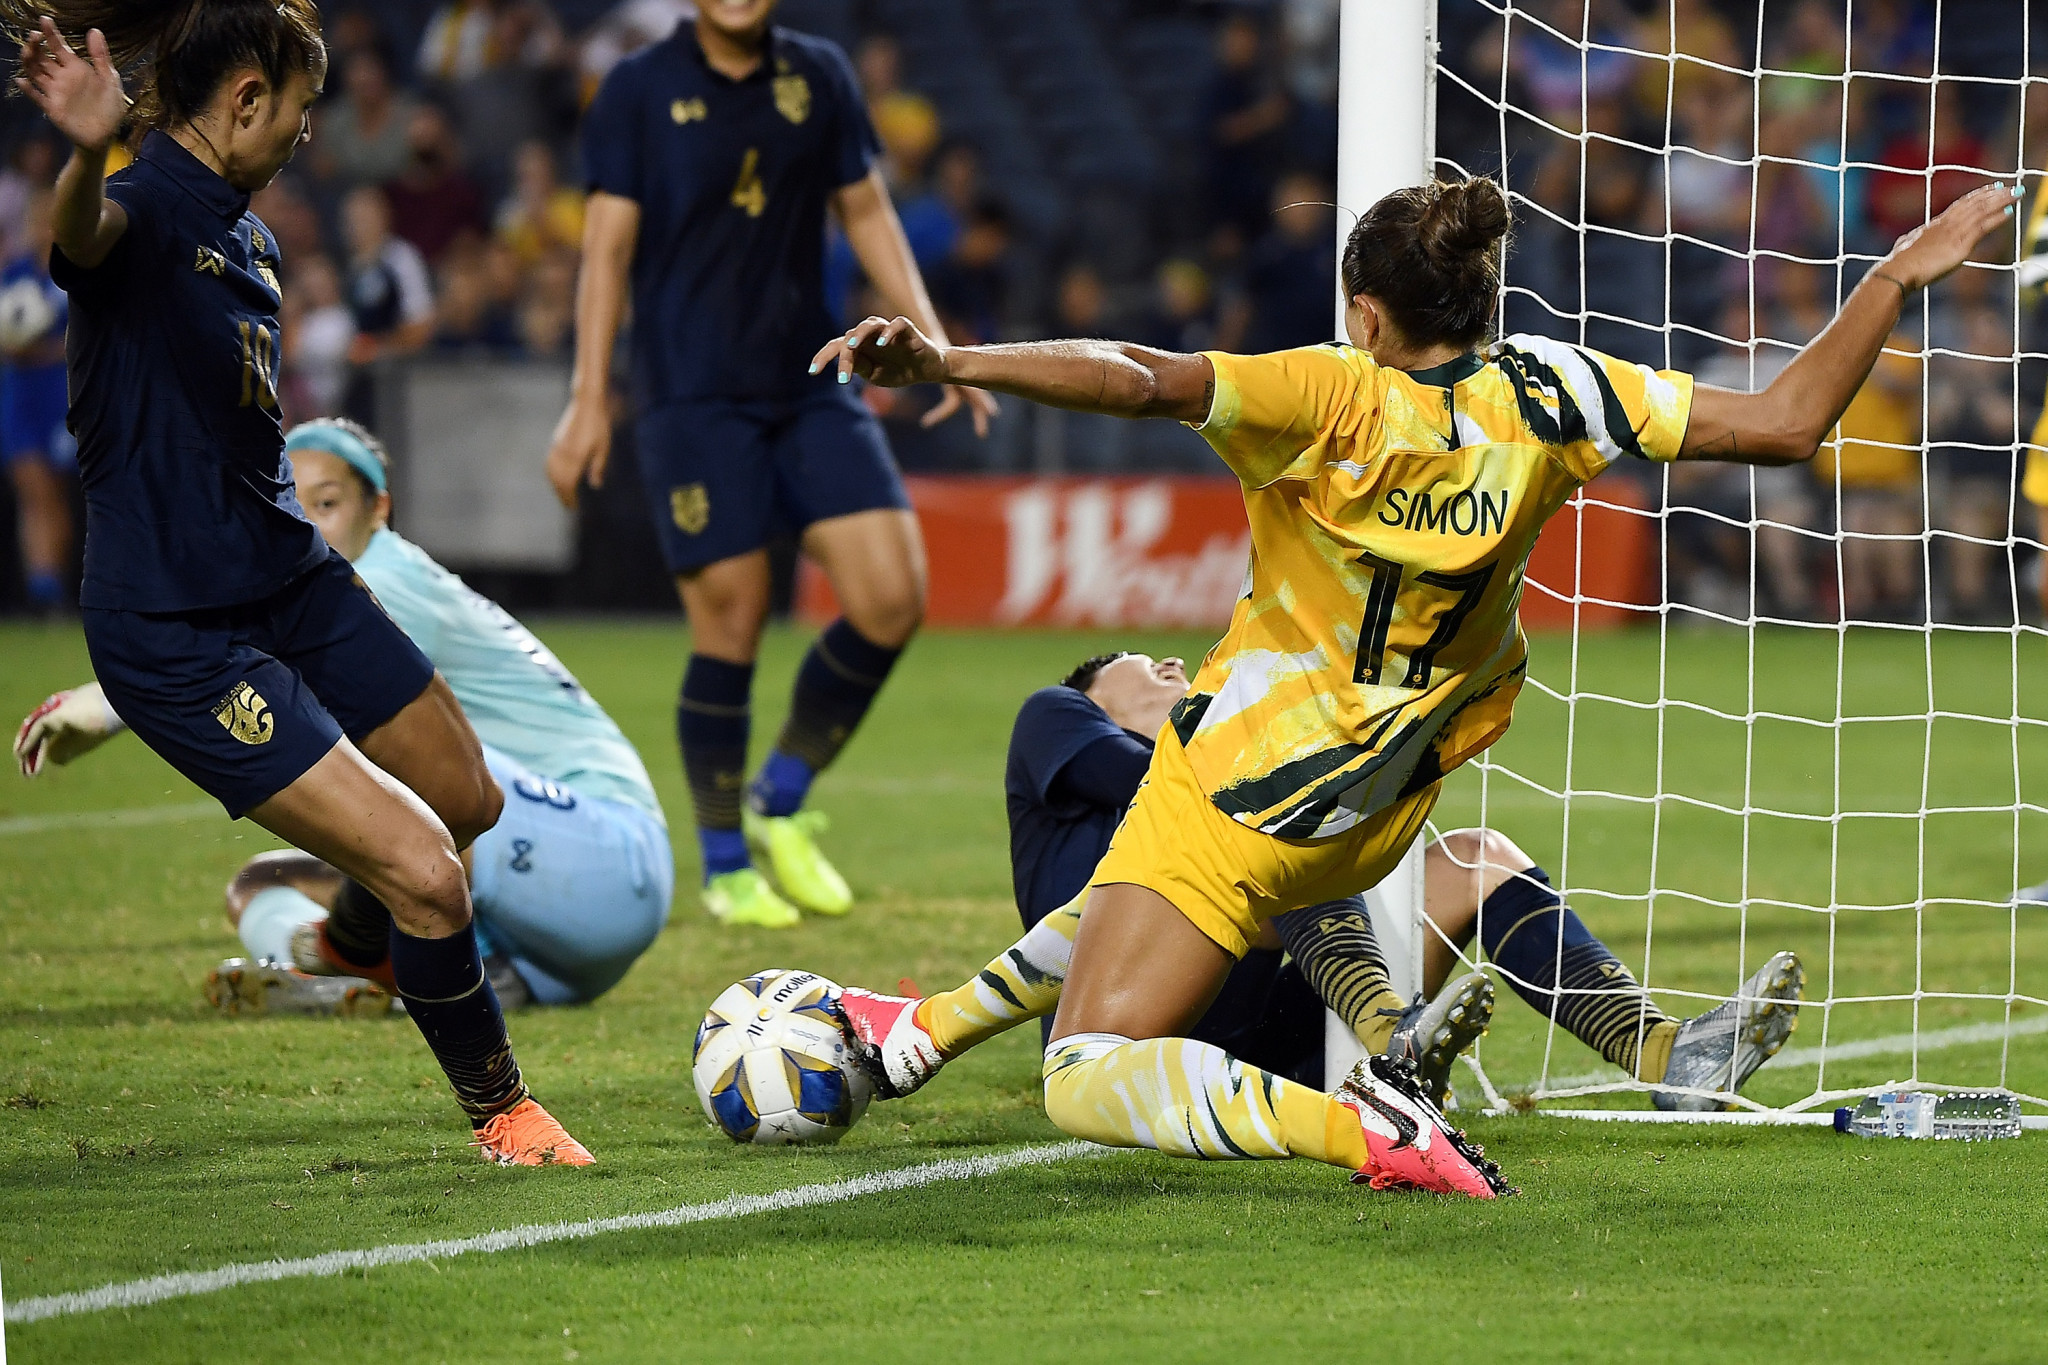 Football Federation Australia had a week to prepare after Tokyo 2020 qualifiers were moved to Sydney ©Getty Images